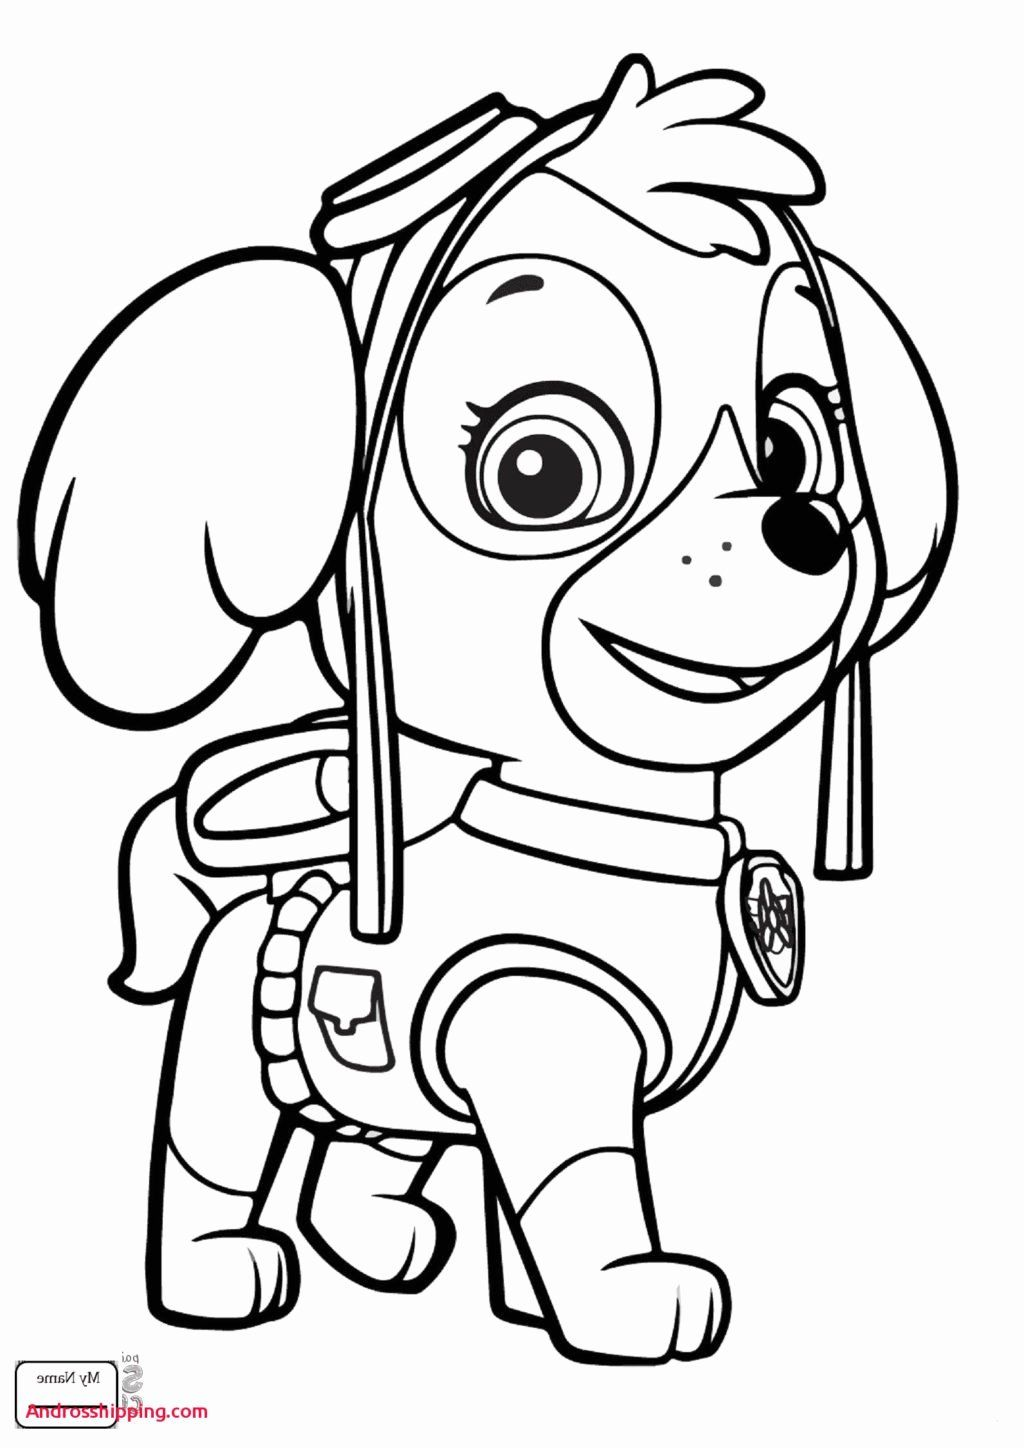 Animal Rescue Coloring Book Unique Paw Patrol Coloring Book Best Paw Patrol Super Pups Paw Patrol Coloring Pages Paw Patrol Coloring Animal Coloring Pages